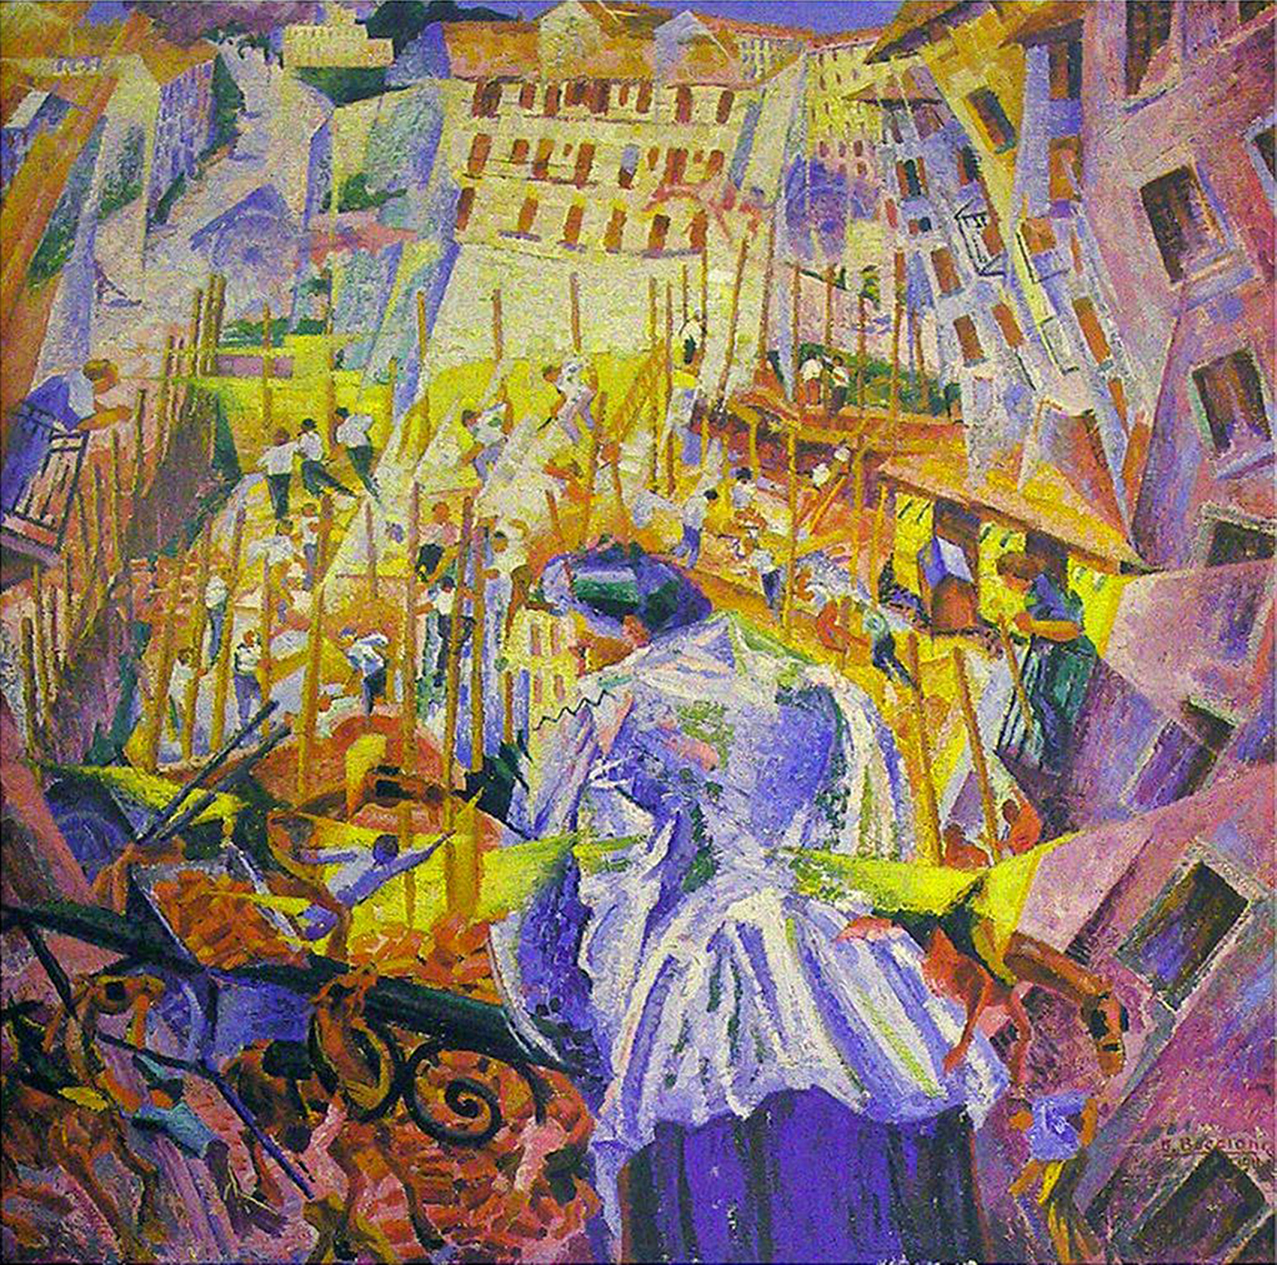 umberto_boccioni_1911_the_street_enters_the_house_oil_on_canvas_100_x_100-6_cm_sprengel_museum